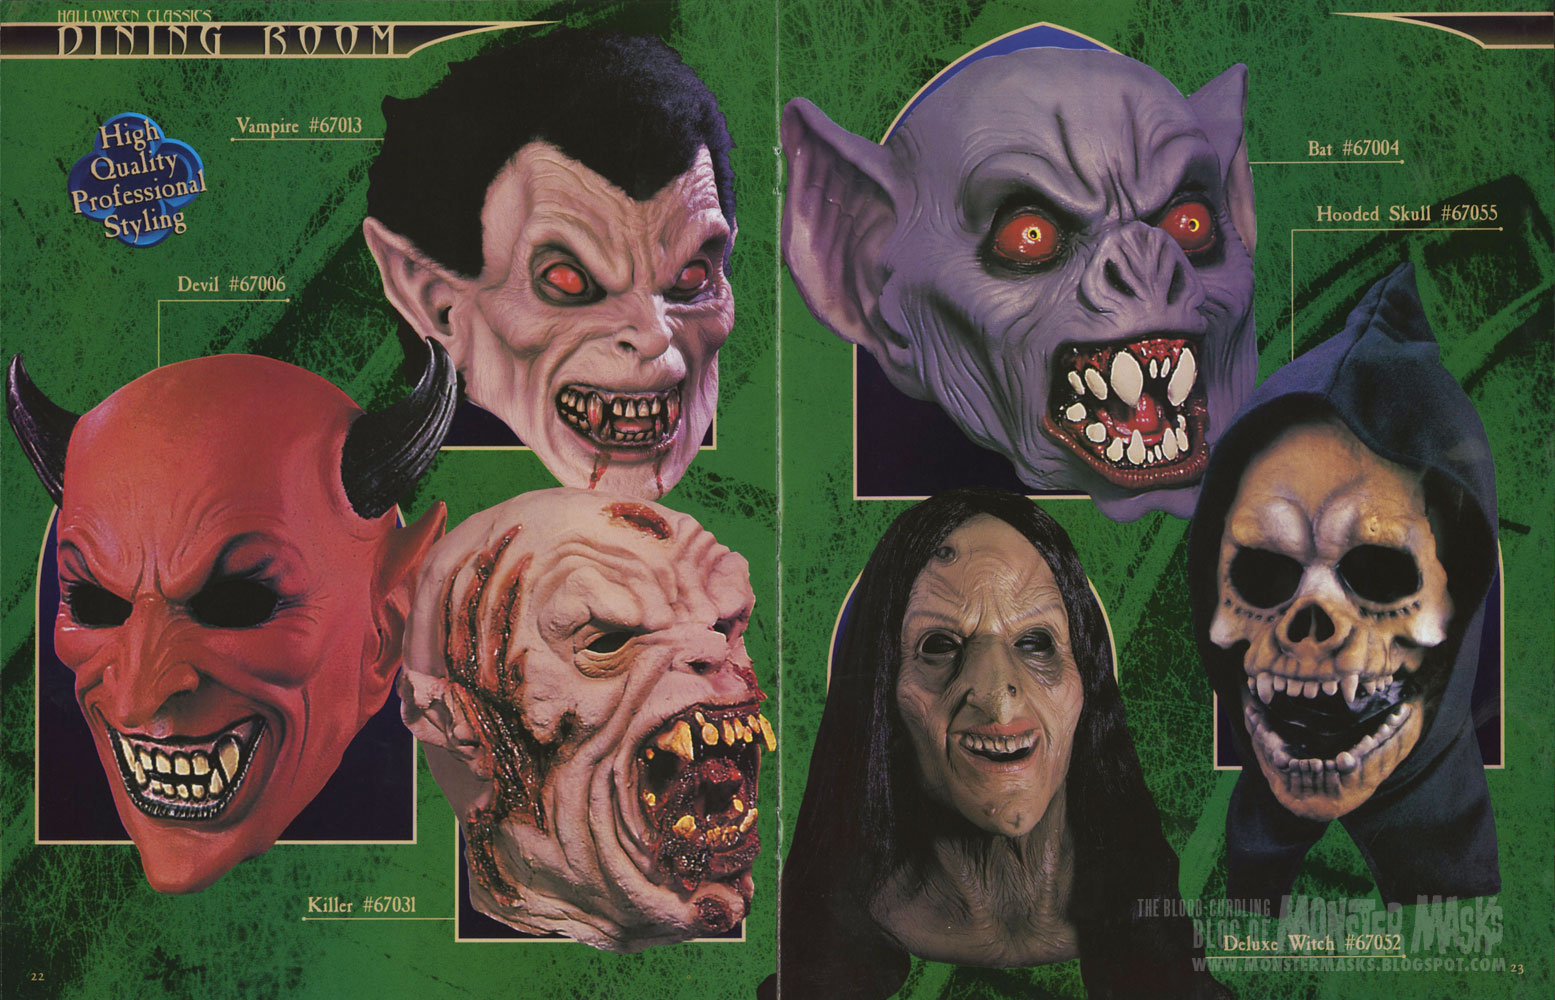 2000-01 Rubies Mask Illusions Catalog | Blood Curdling Blog of ...